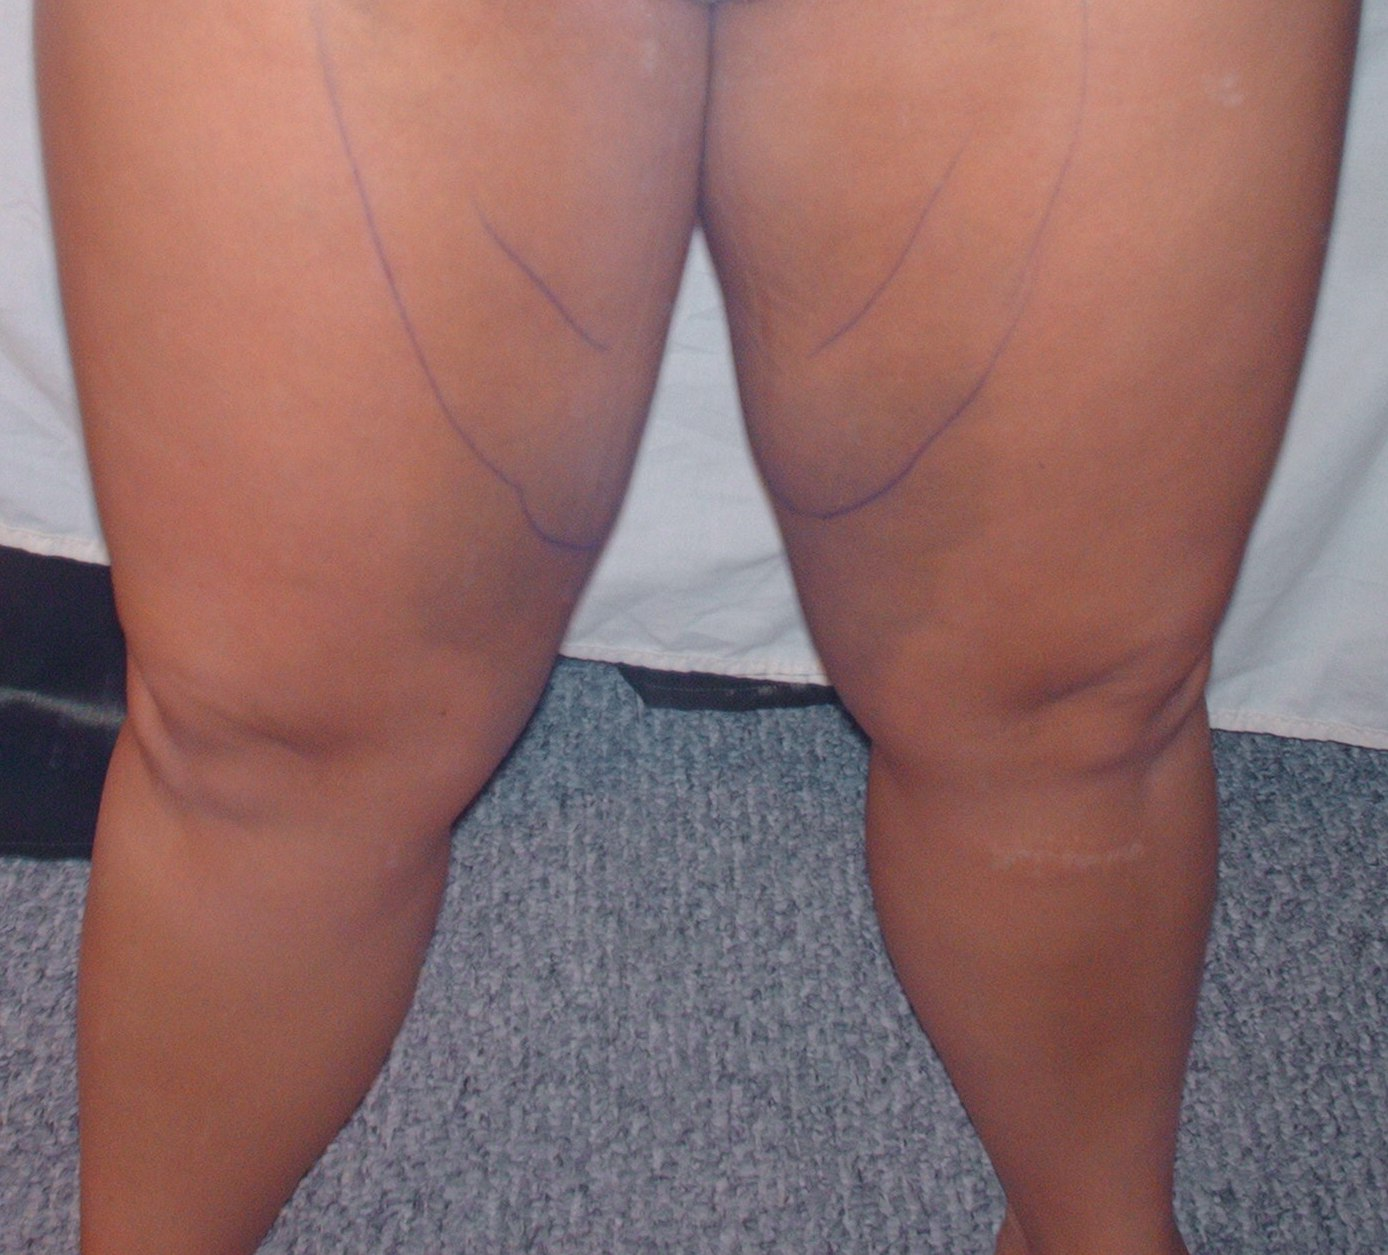 Thighs 4 days after